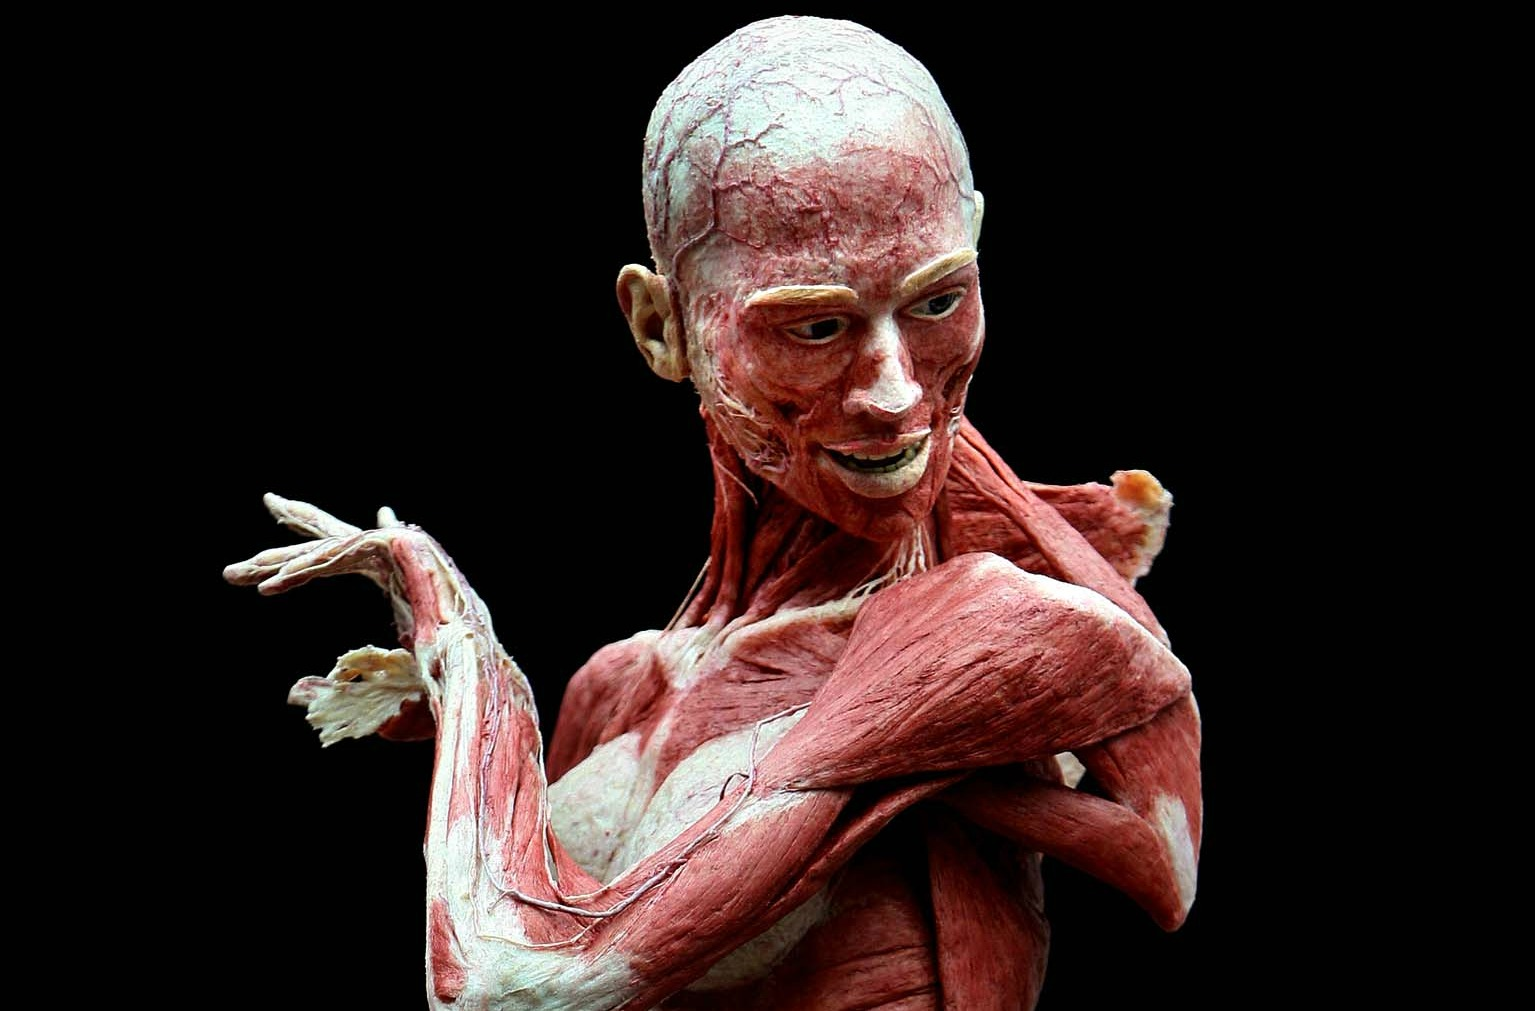 Anatomy Wallpaper and Background Image | 1535x1011 | ID ...